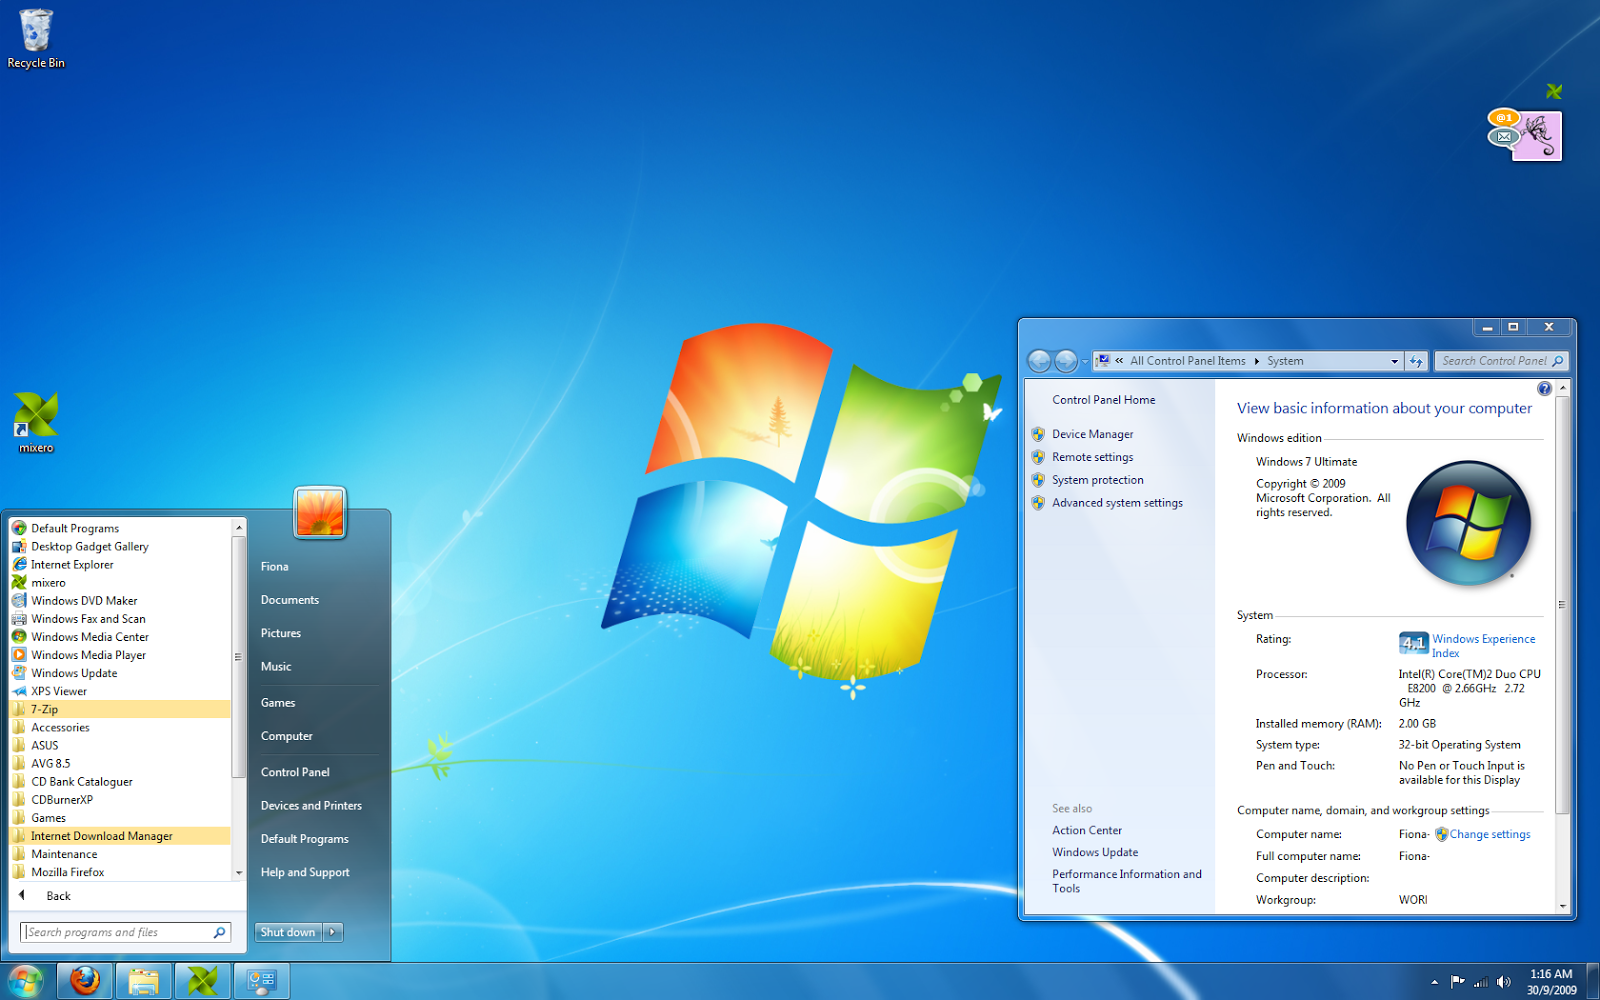 Windows 7 Ultimate Free Download 32\64-bit IOS Official